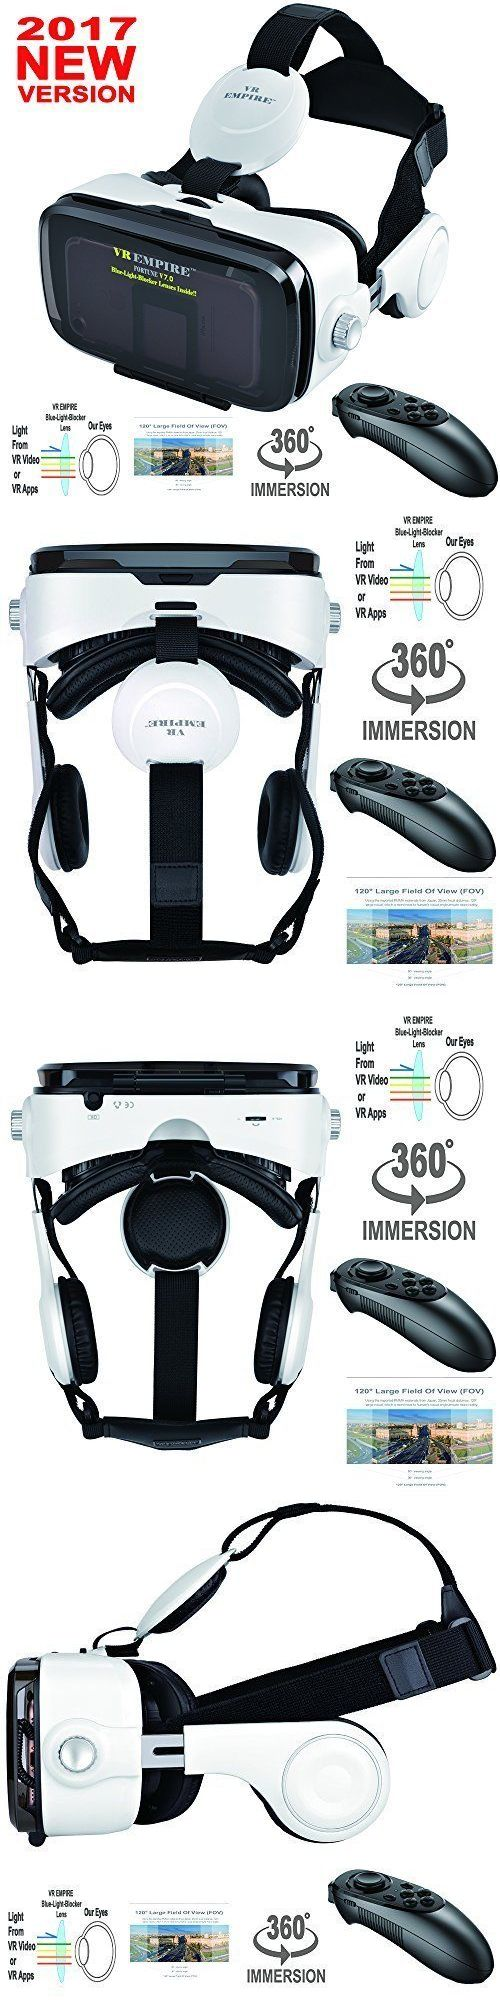 Smartphone VR Headsets: Vr Headset 3D Glasses Headphones Rc Virtual Reality For Samsung S8 S8 Plus New -> BUY IT NOW ONLY: $82.12 on eBay!